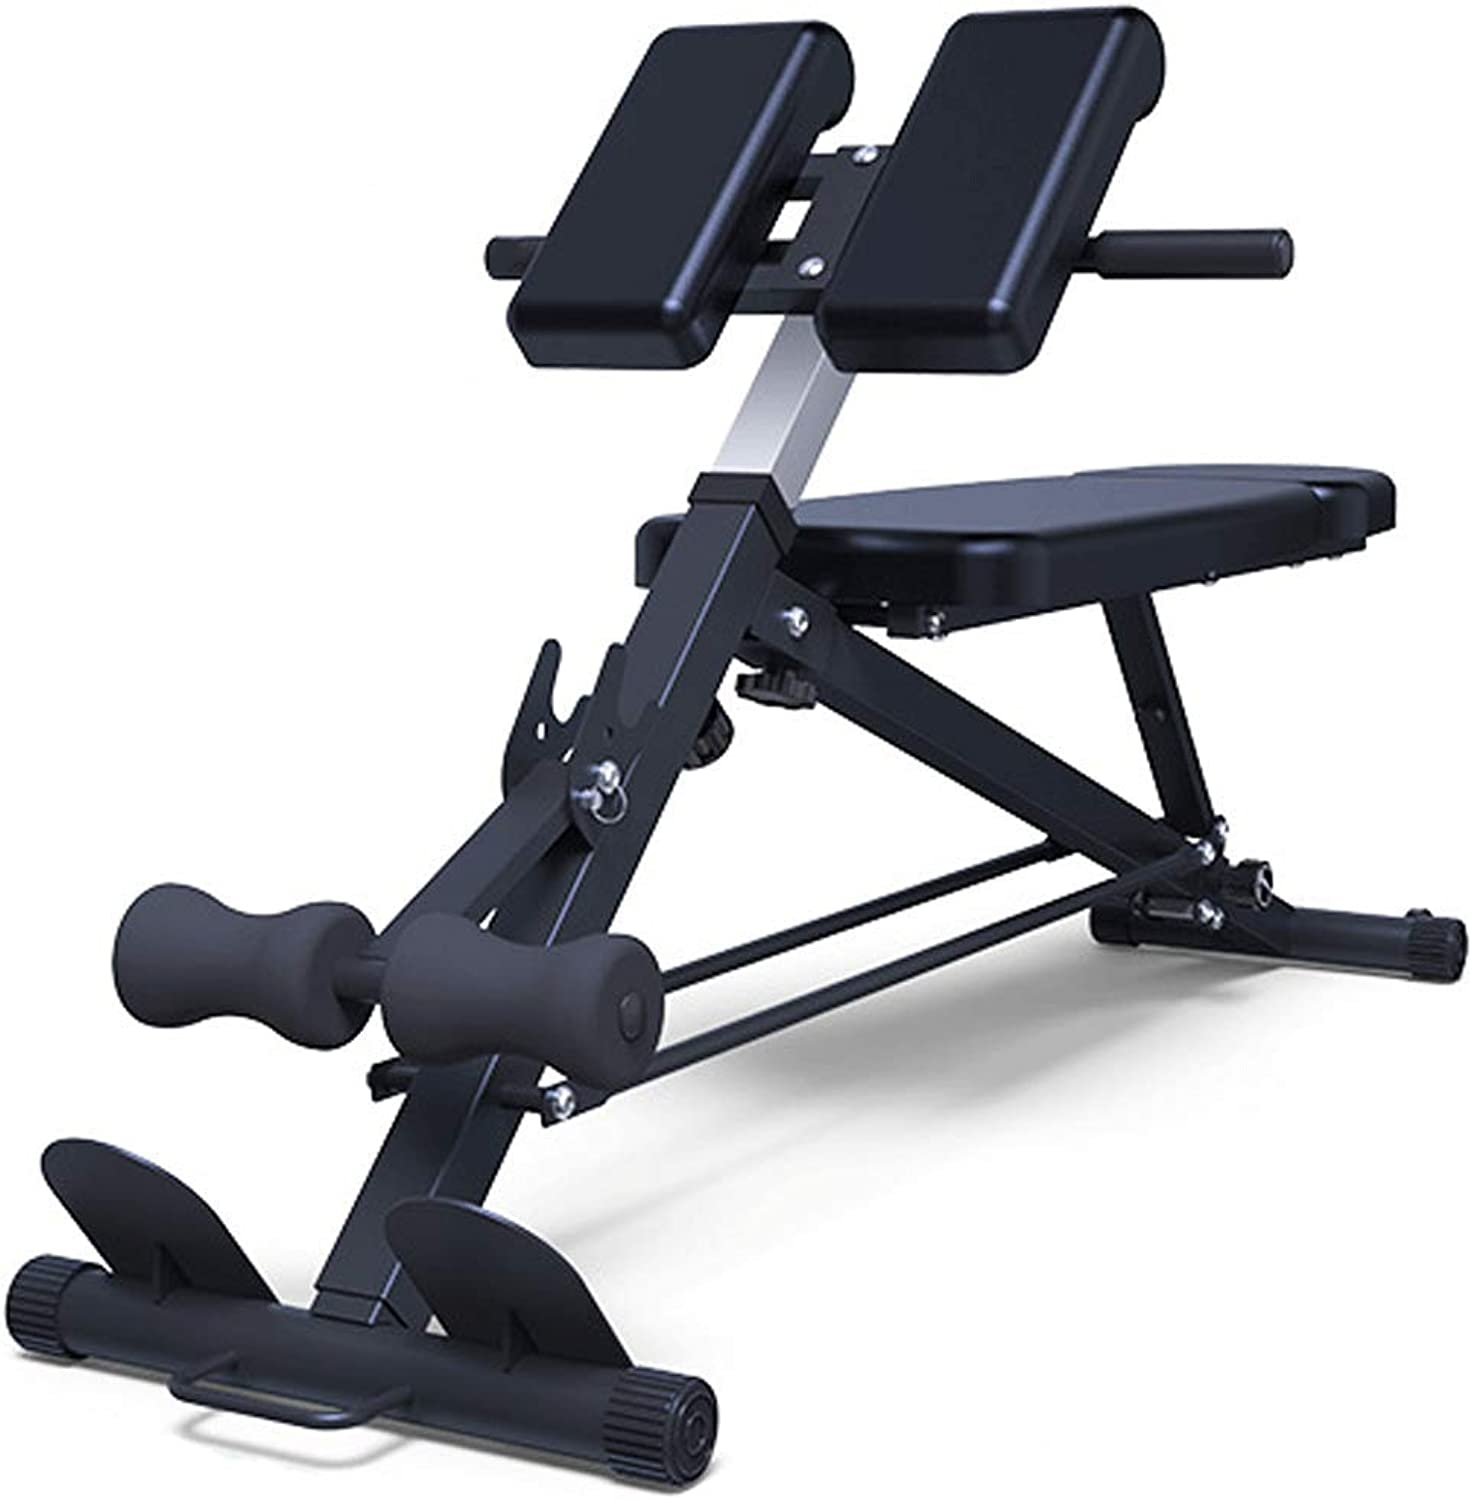 Weight Bench Roman Chair Fitness Equipment Situps Home Dumbbell Bench Adjustable Benches Decline Bench